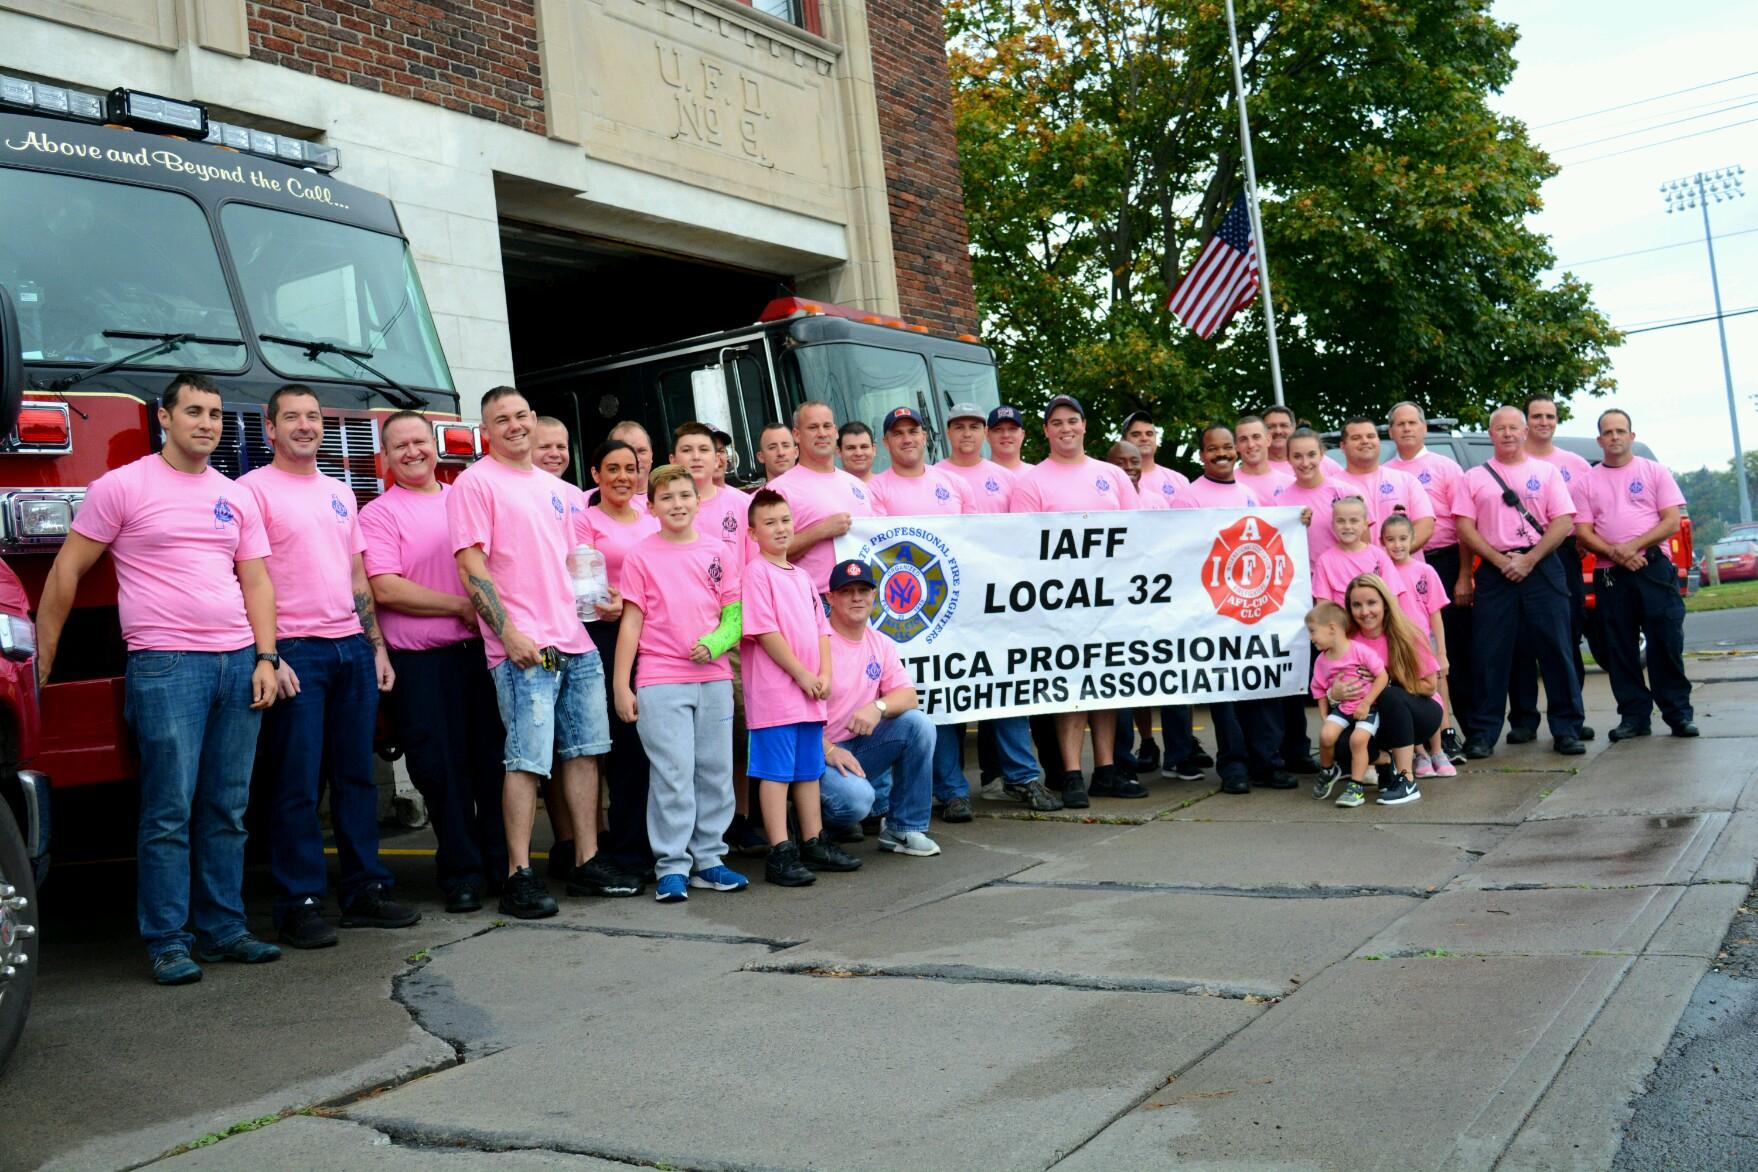 IAFF Local 32 Utica Professional Firefighters Association